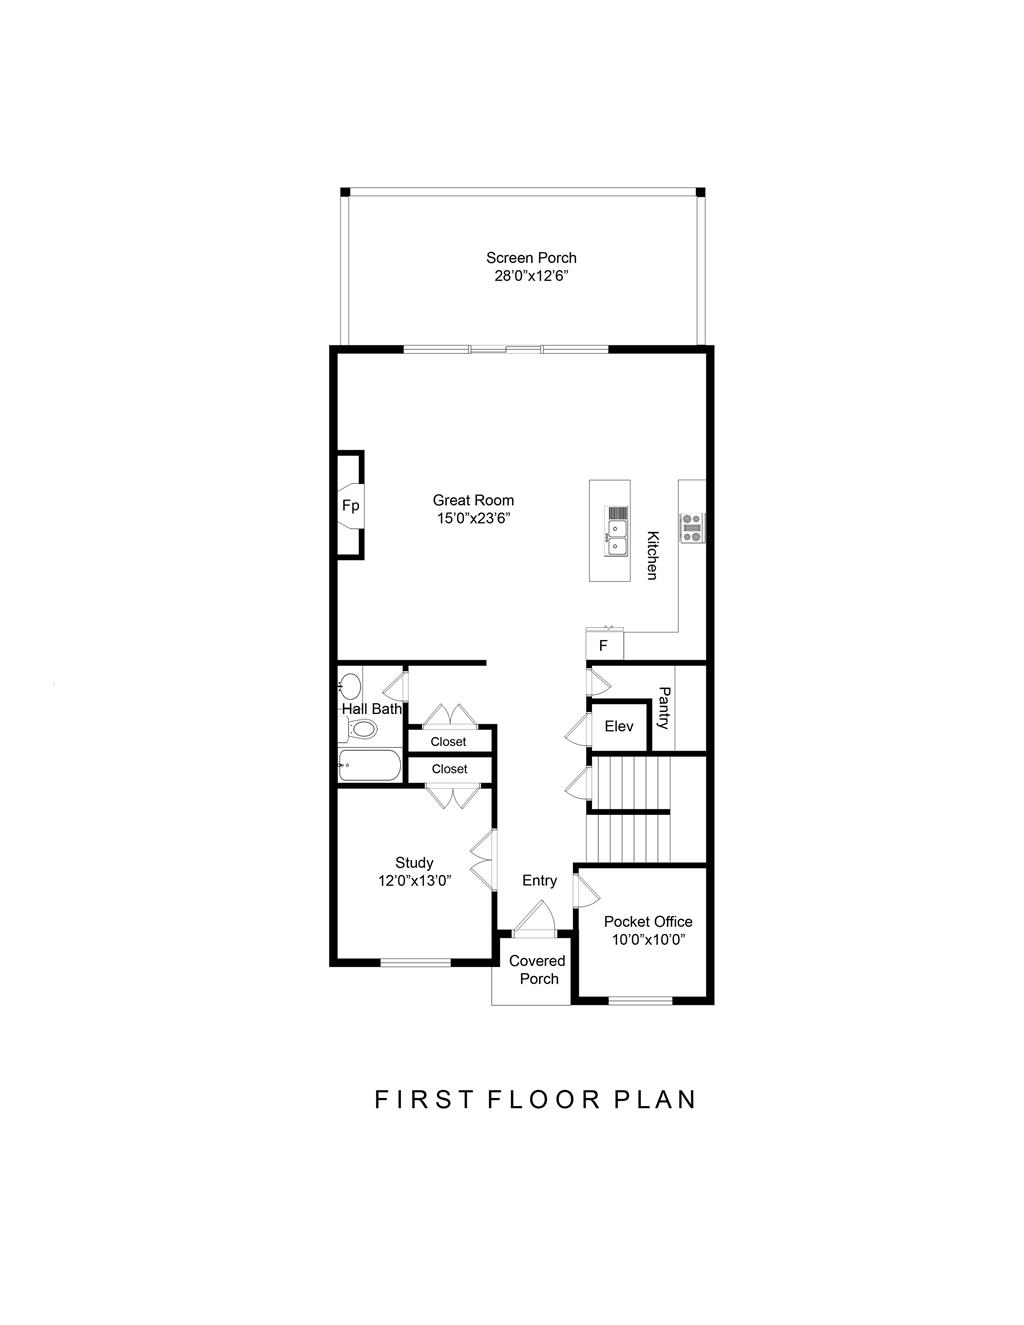 First Floor for 2915 Walworth Ave East End, OH 45226